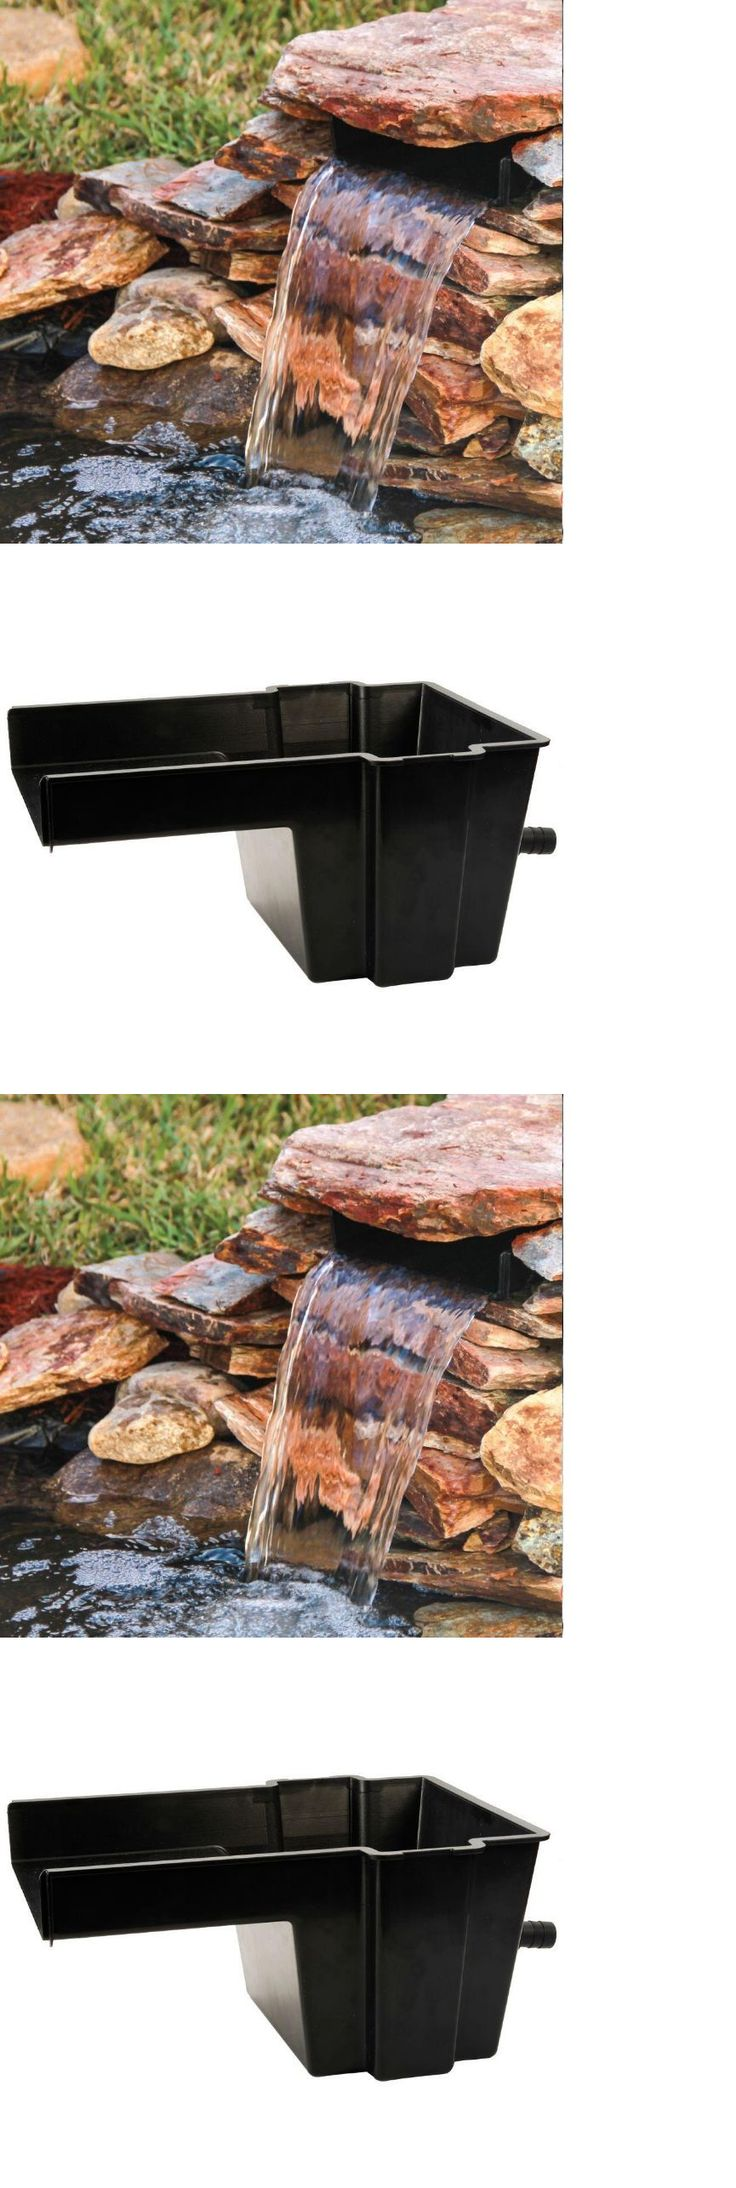 407 Best Images About Water Features On Pinterest